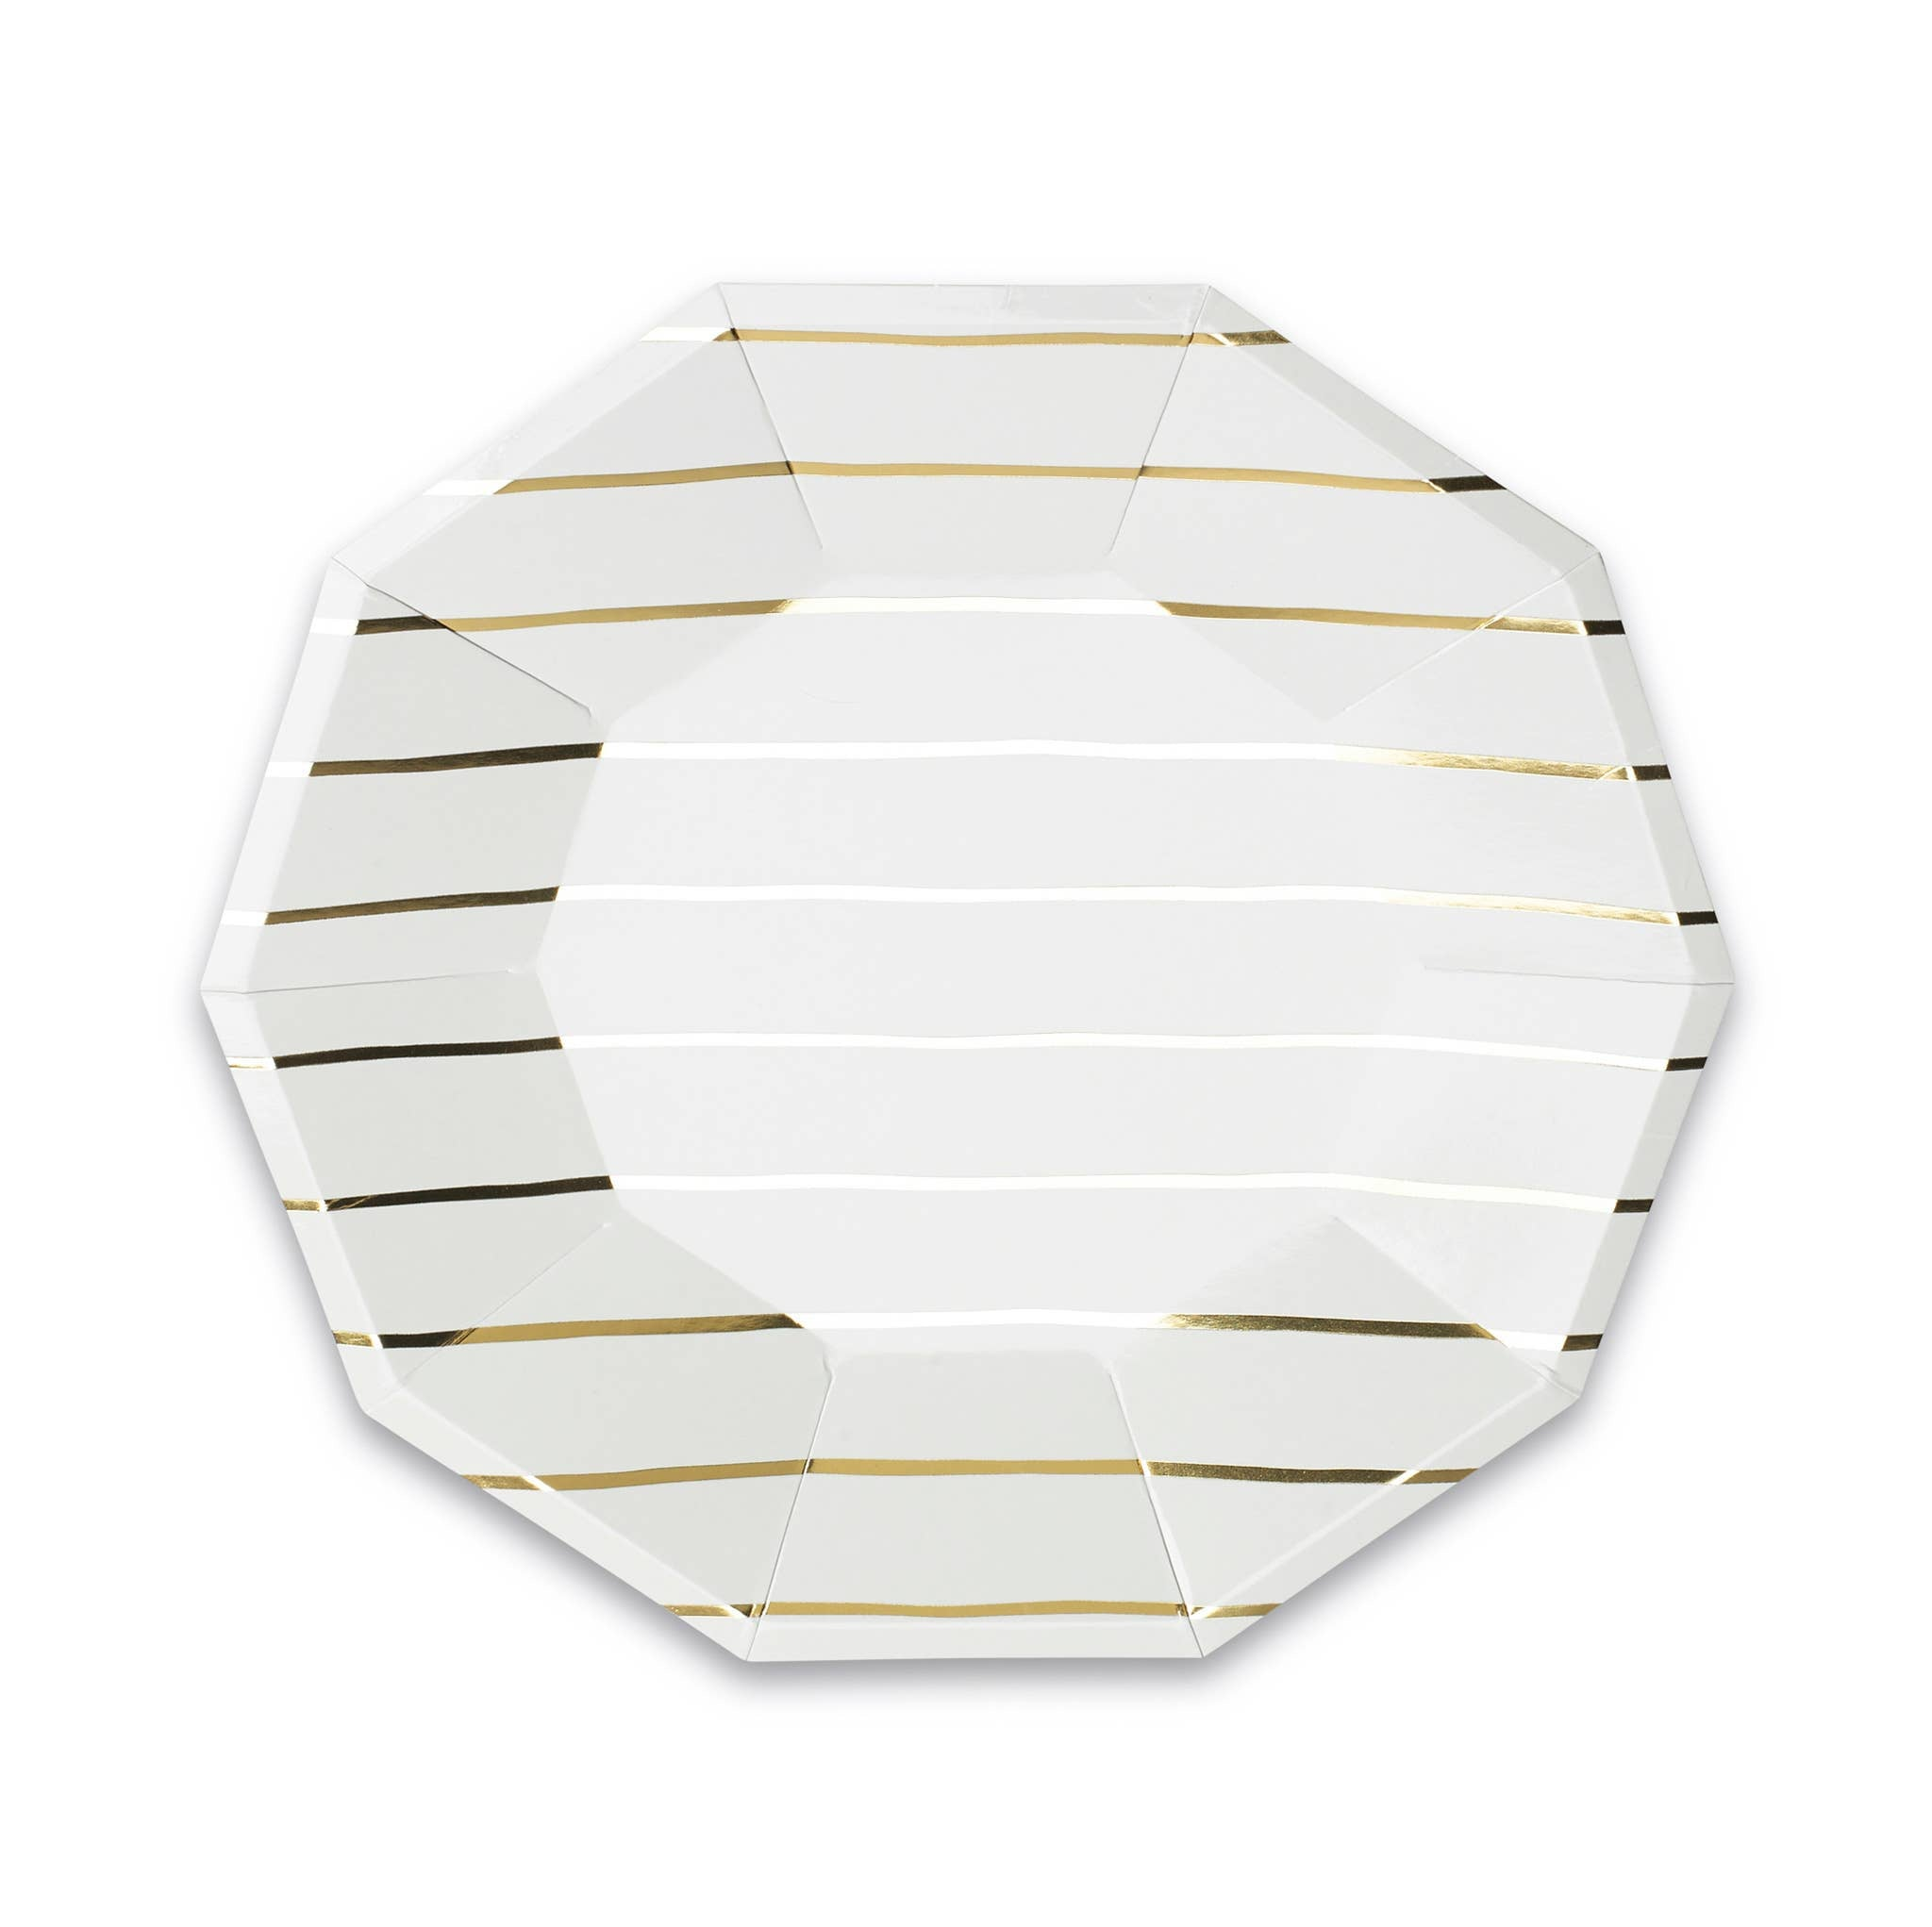 Frenchie Matallic Striped Large Plates